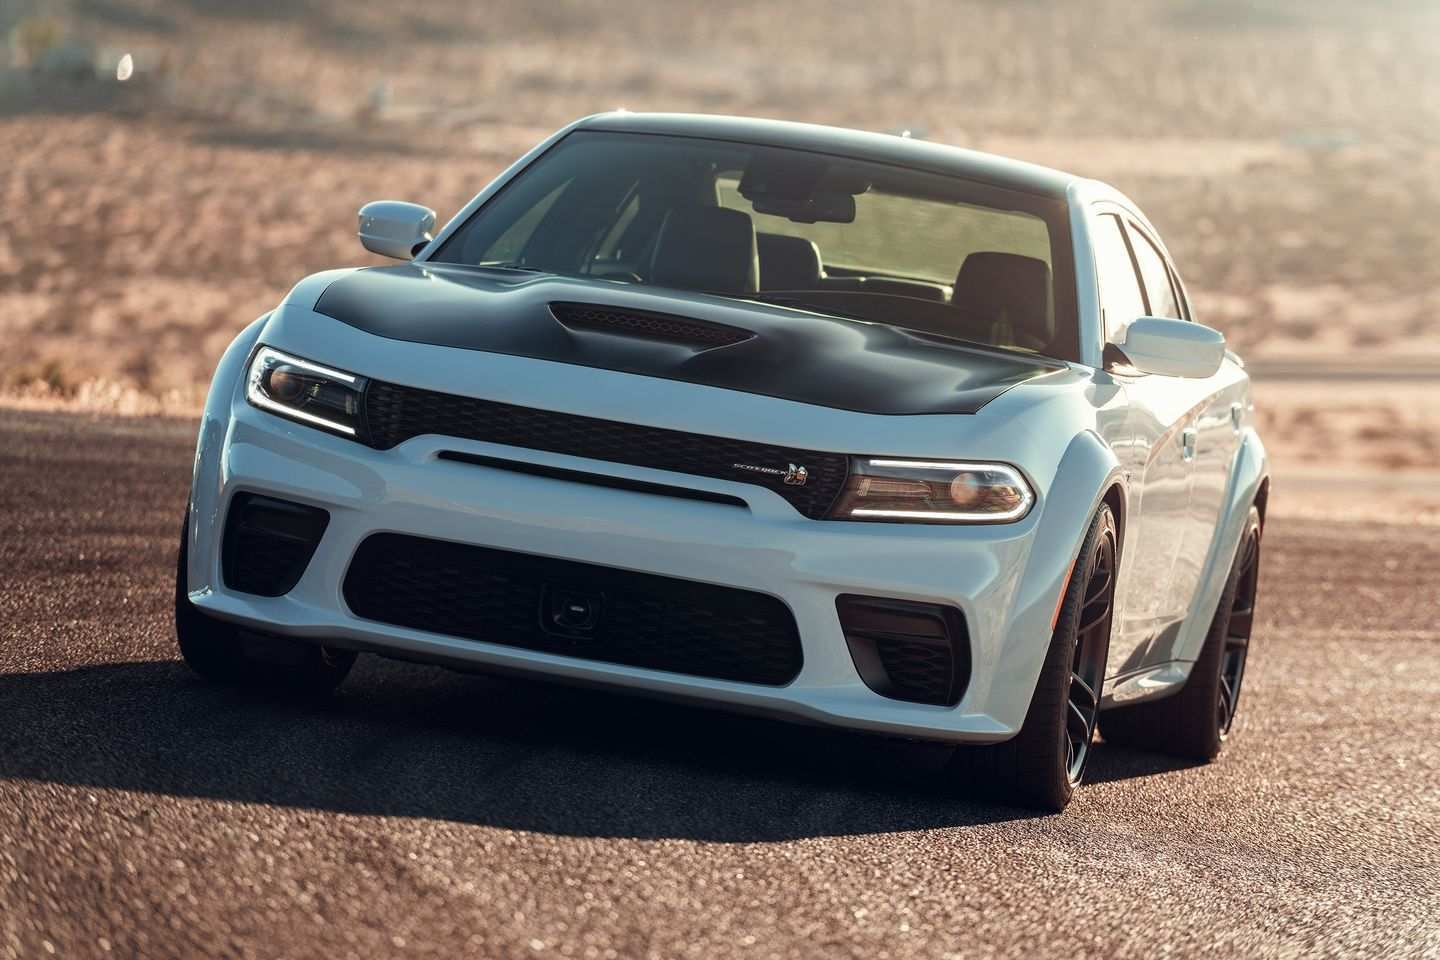 39 The 2020 Dodge Charger Scat Pack Widebody Prices